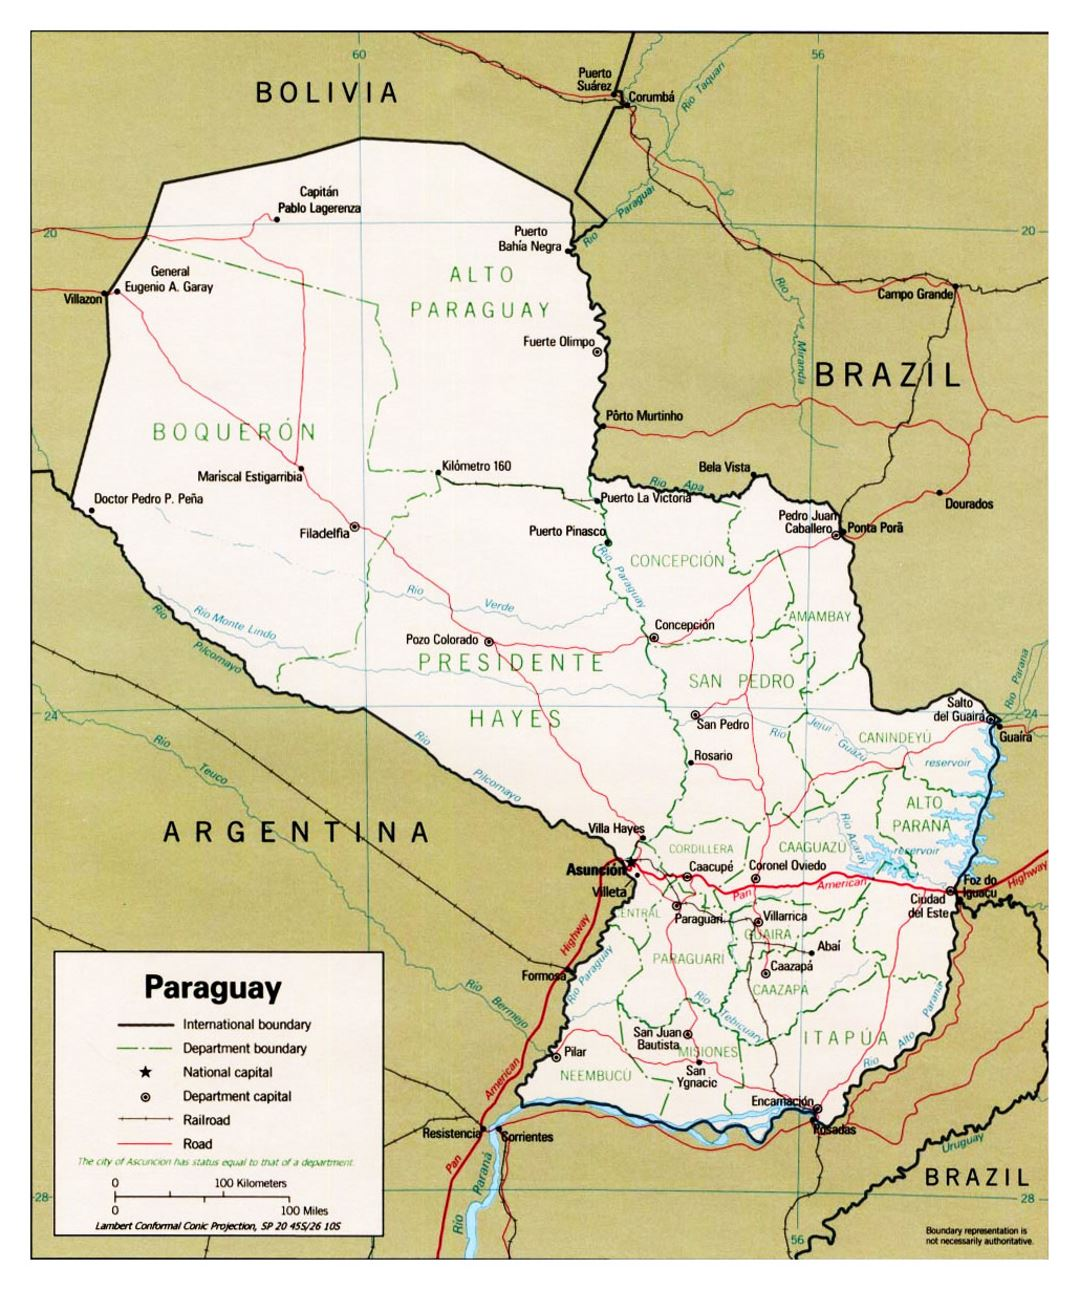 Detailed Political And Administrative Map Of Paraguay With Roads And Major Cities